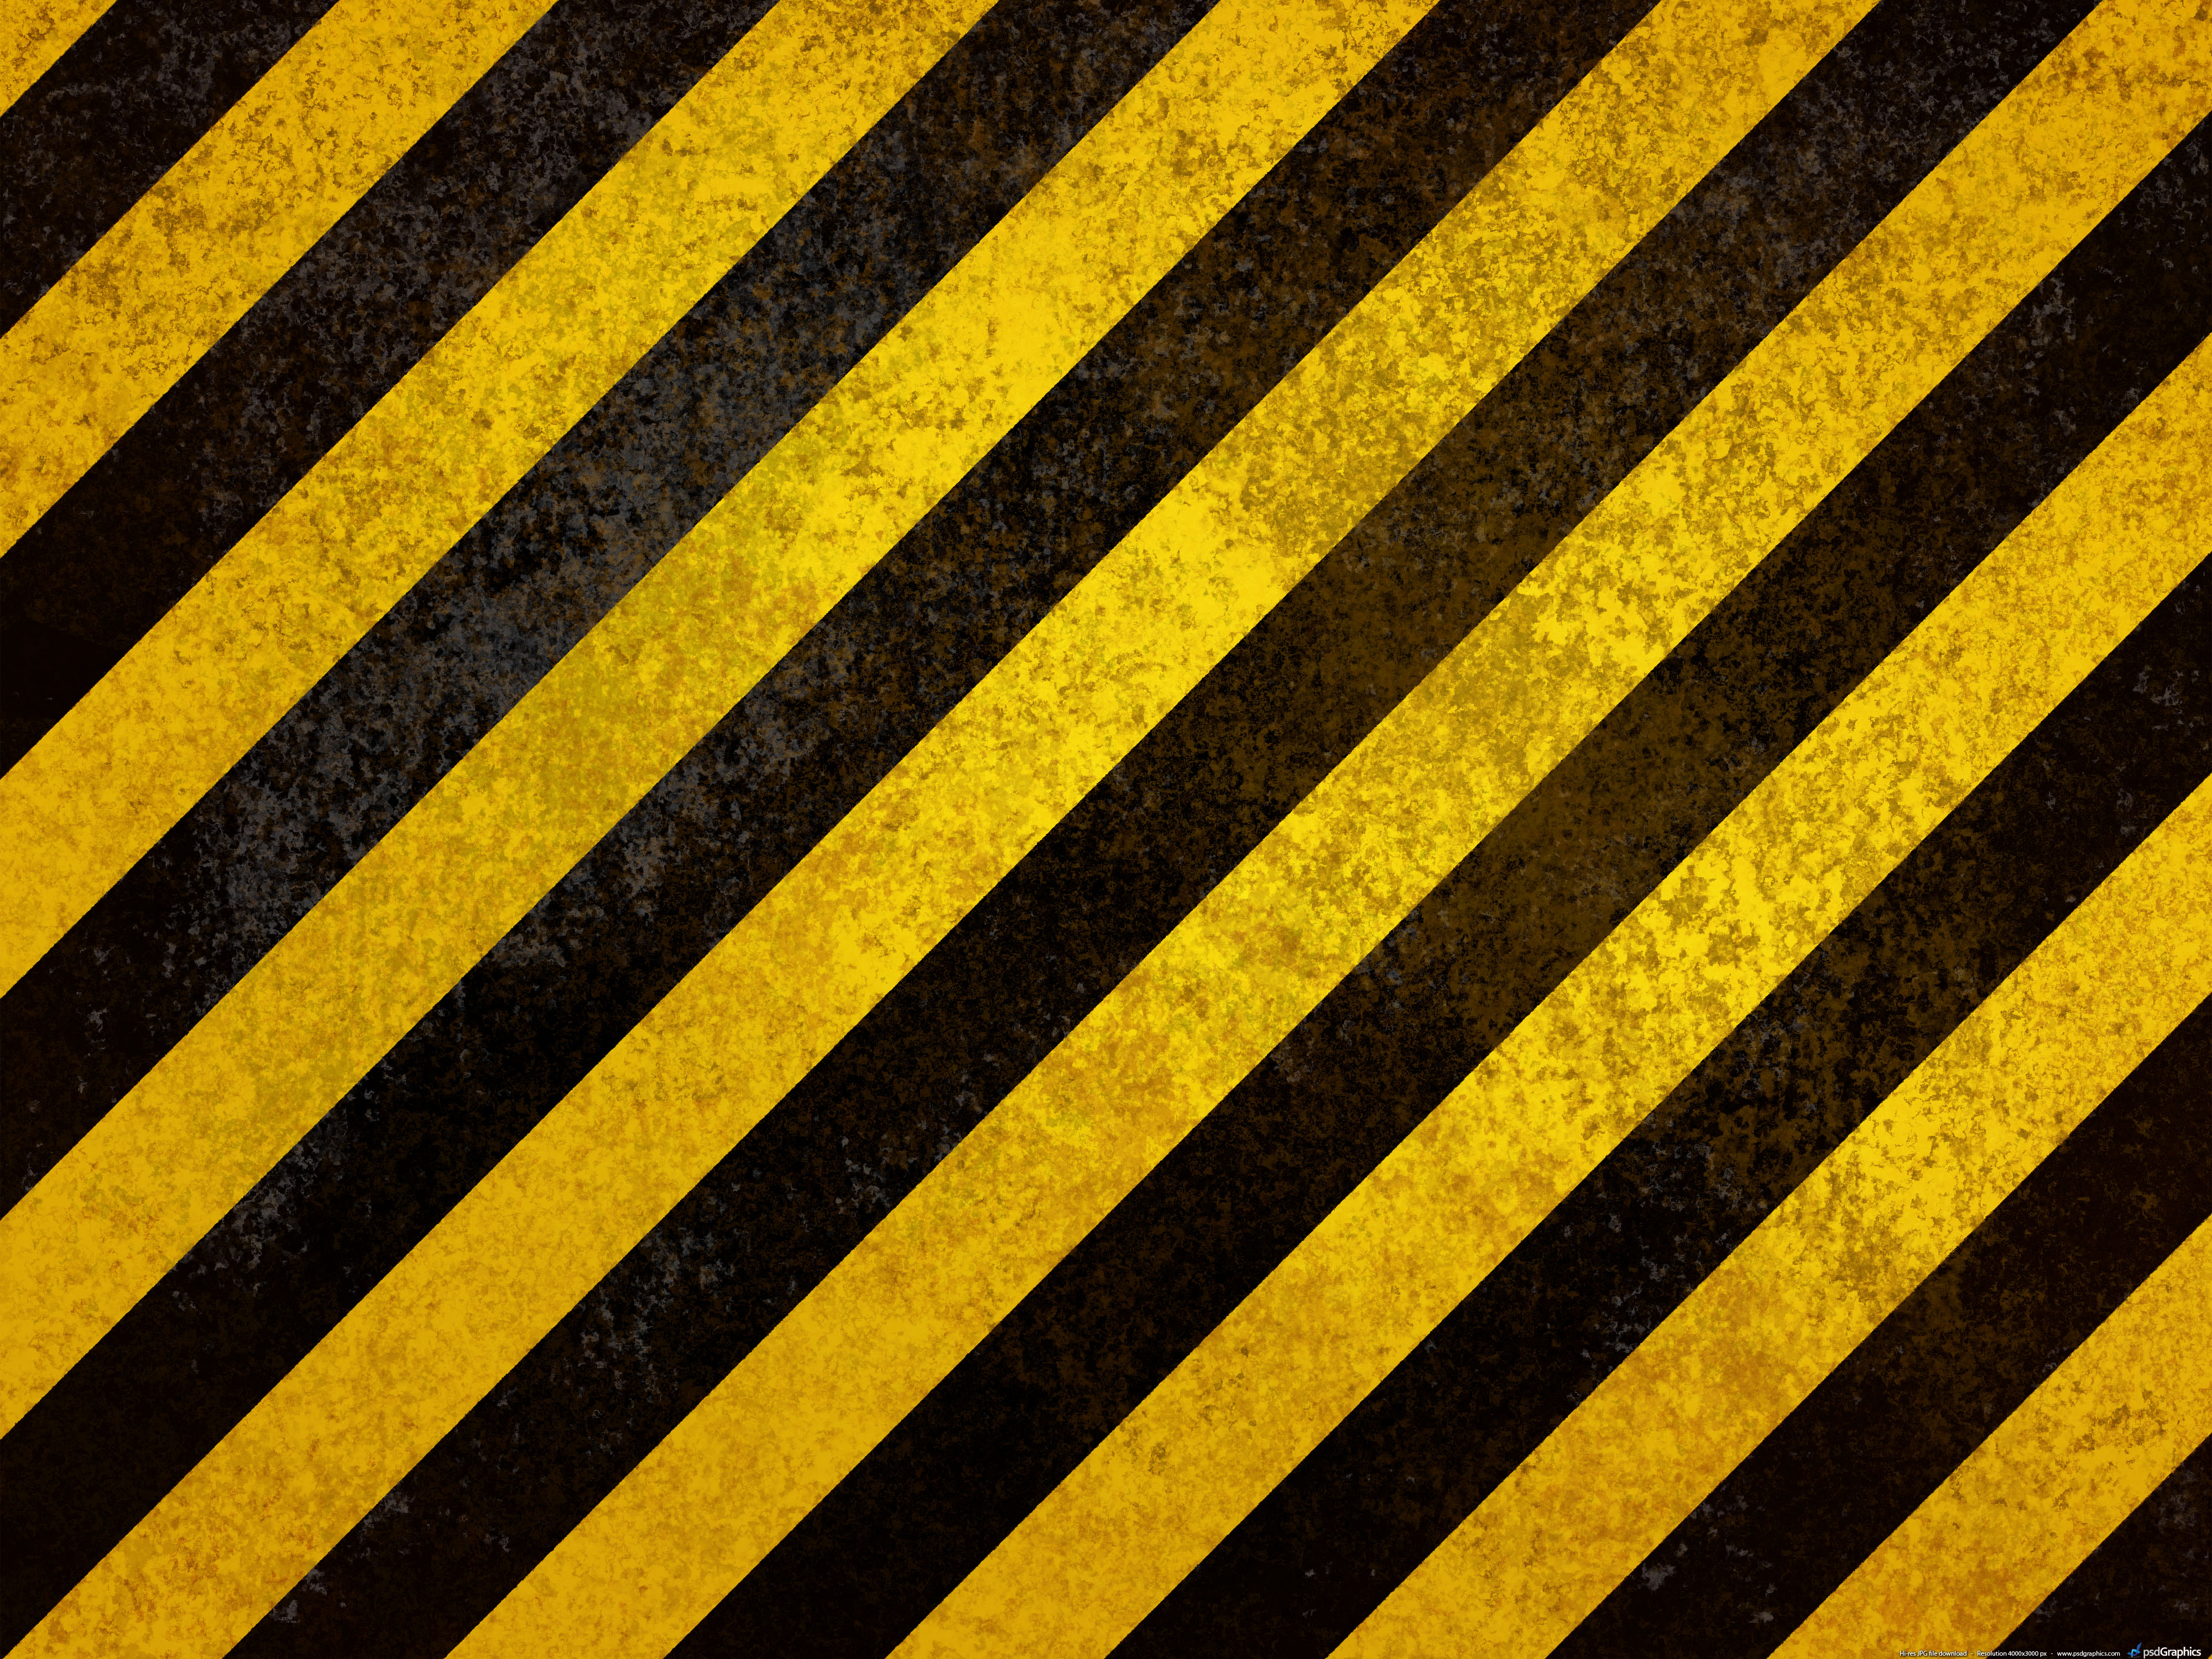 4000x3000 - Yellow and Black 30